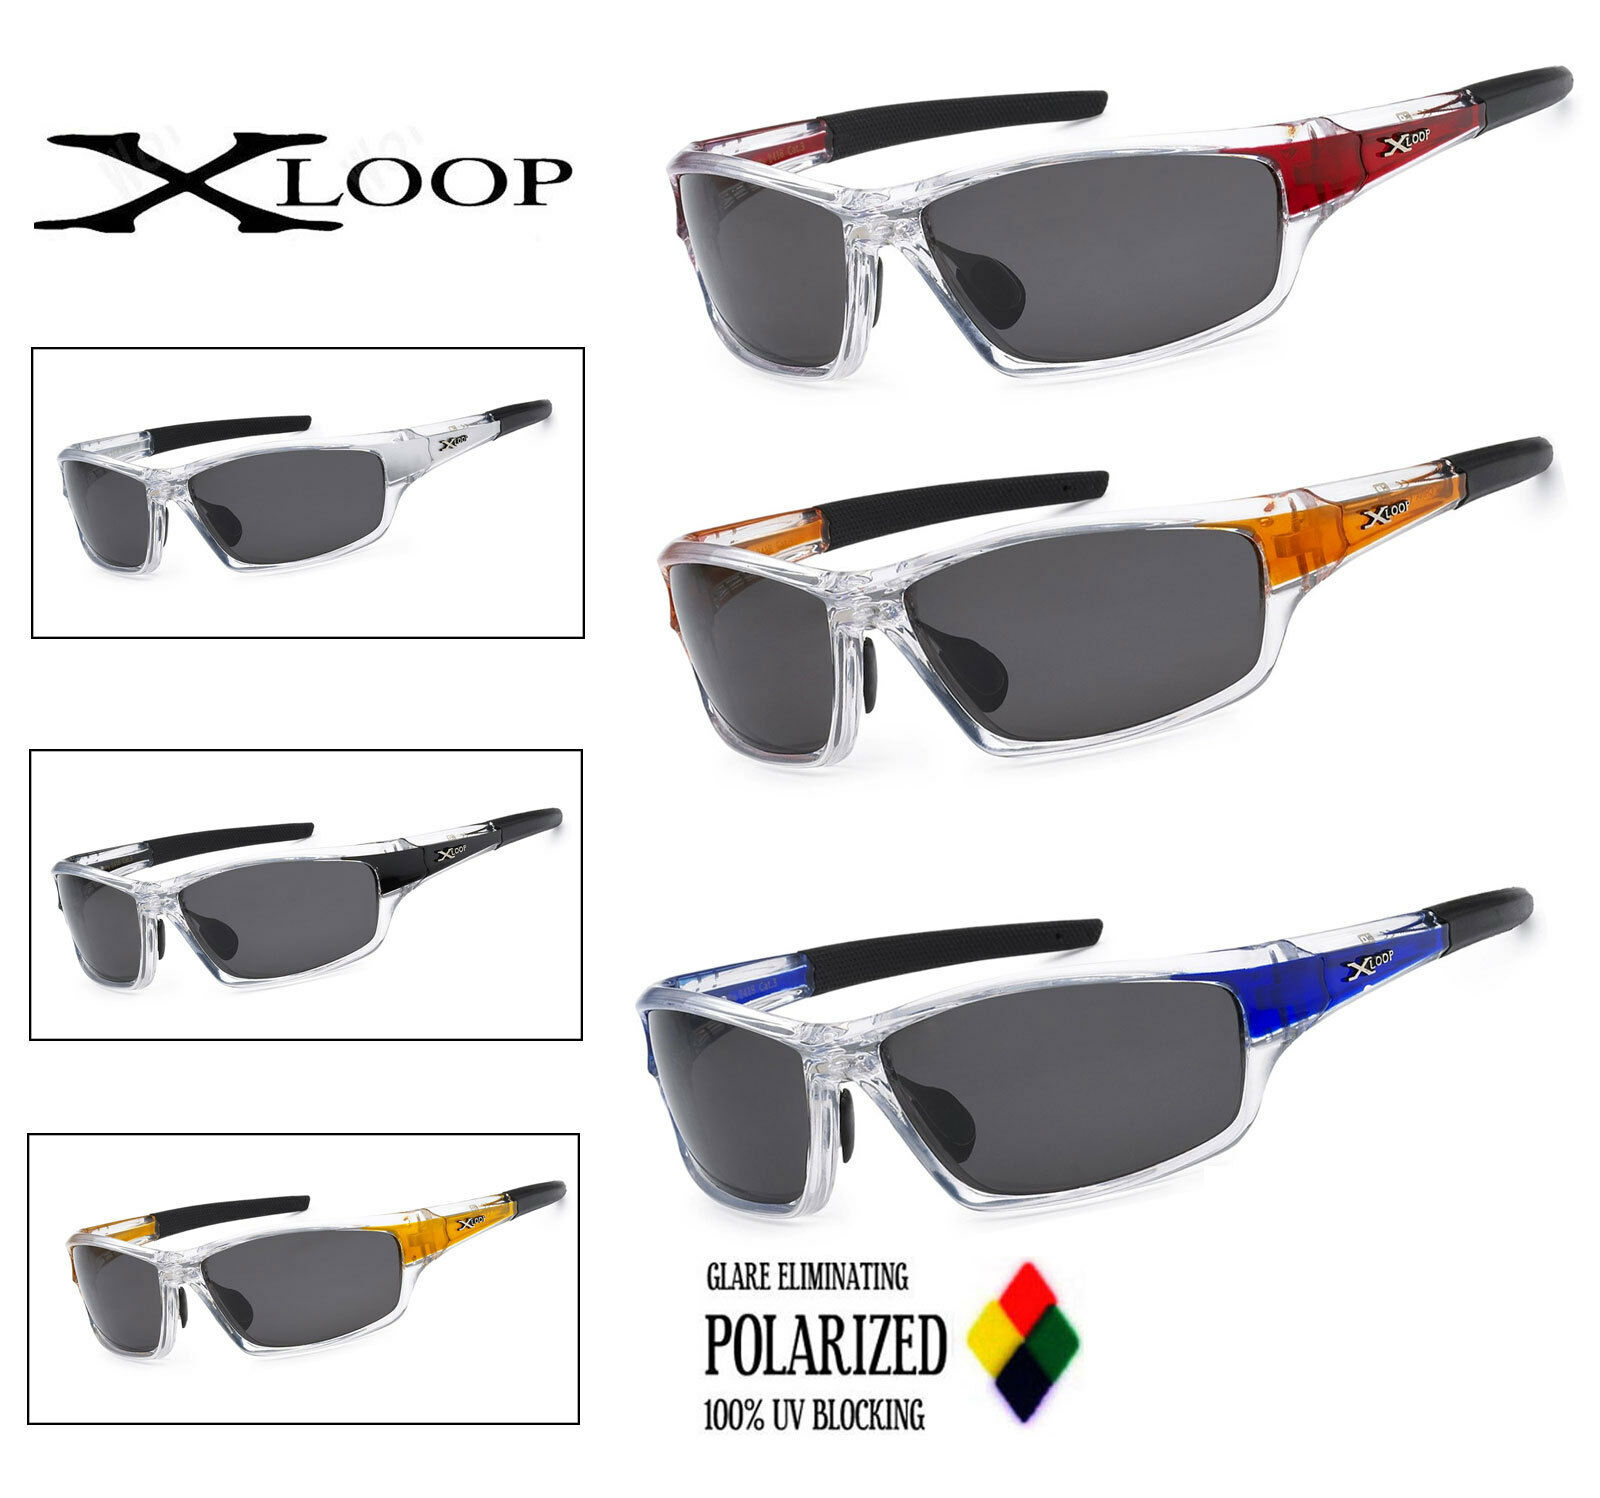 11e1e8c7753 Details about Xloop Polarized Summer Winter Water Sport Glasses Fishing  Mens Womens Sunglasses